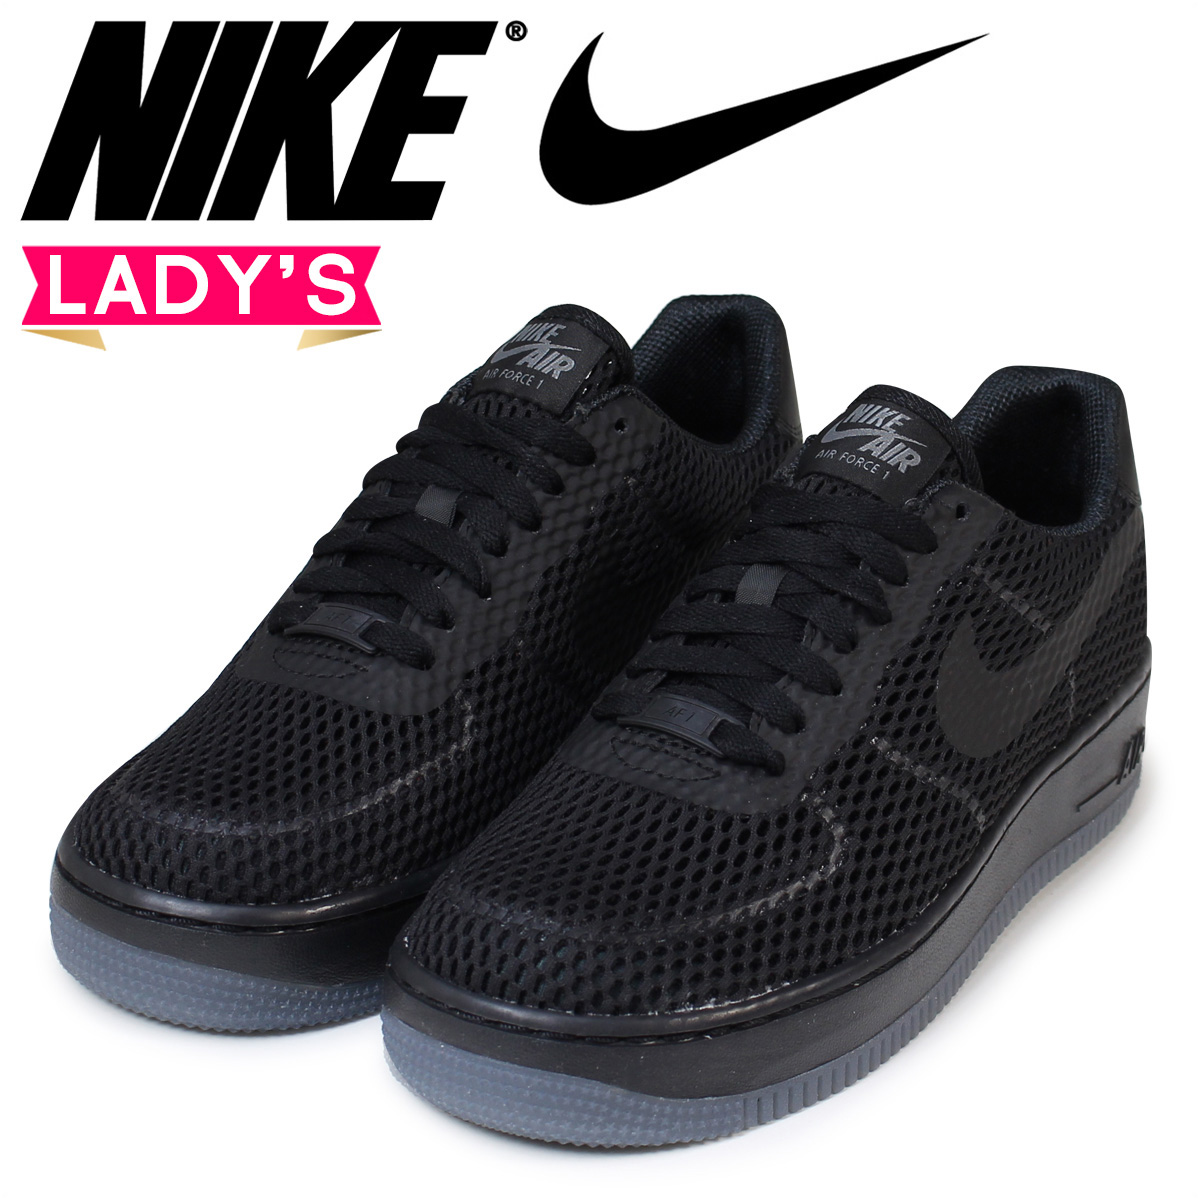 NIKE FORCE WNMS AIR FORCE 1 エアフォース1 LO UP STEP BREEZE BREEZE ナイキ エアフォース1 スニーカー レディース ブラック 833123-001, 富久屋本店:6ceaef98 --- ww.thecollagist.com